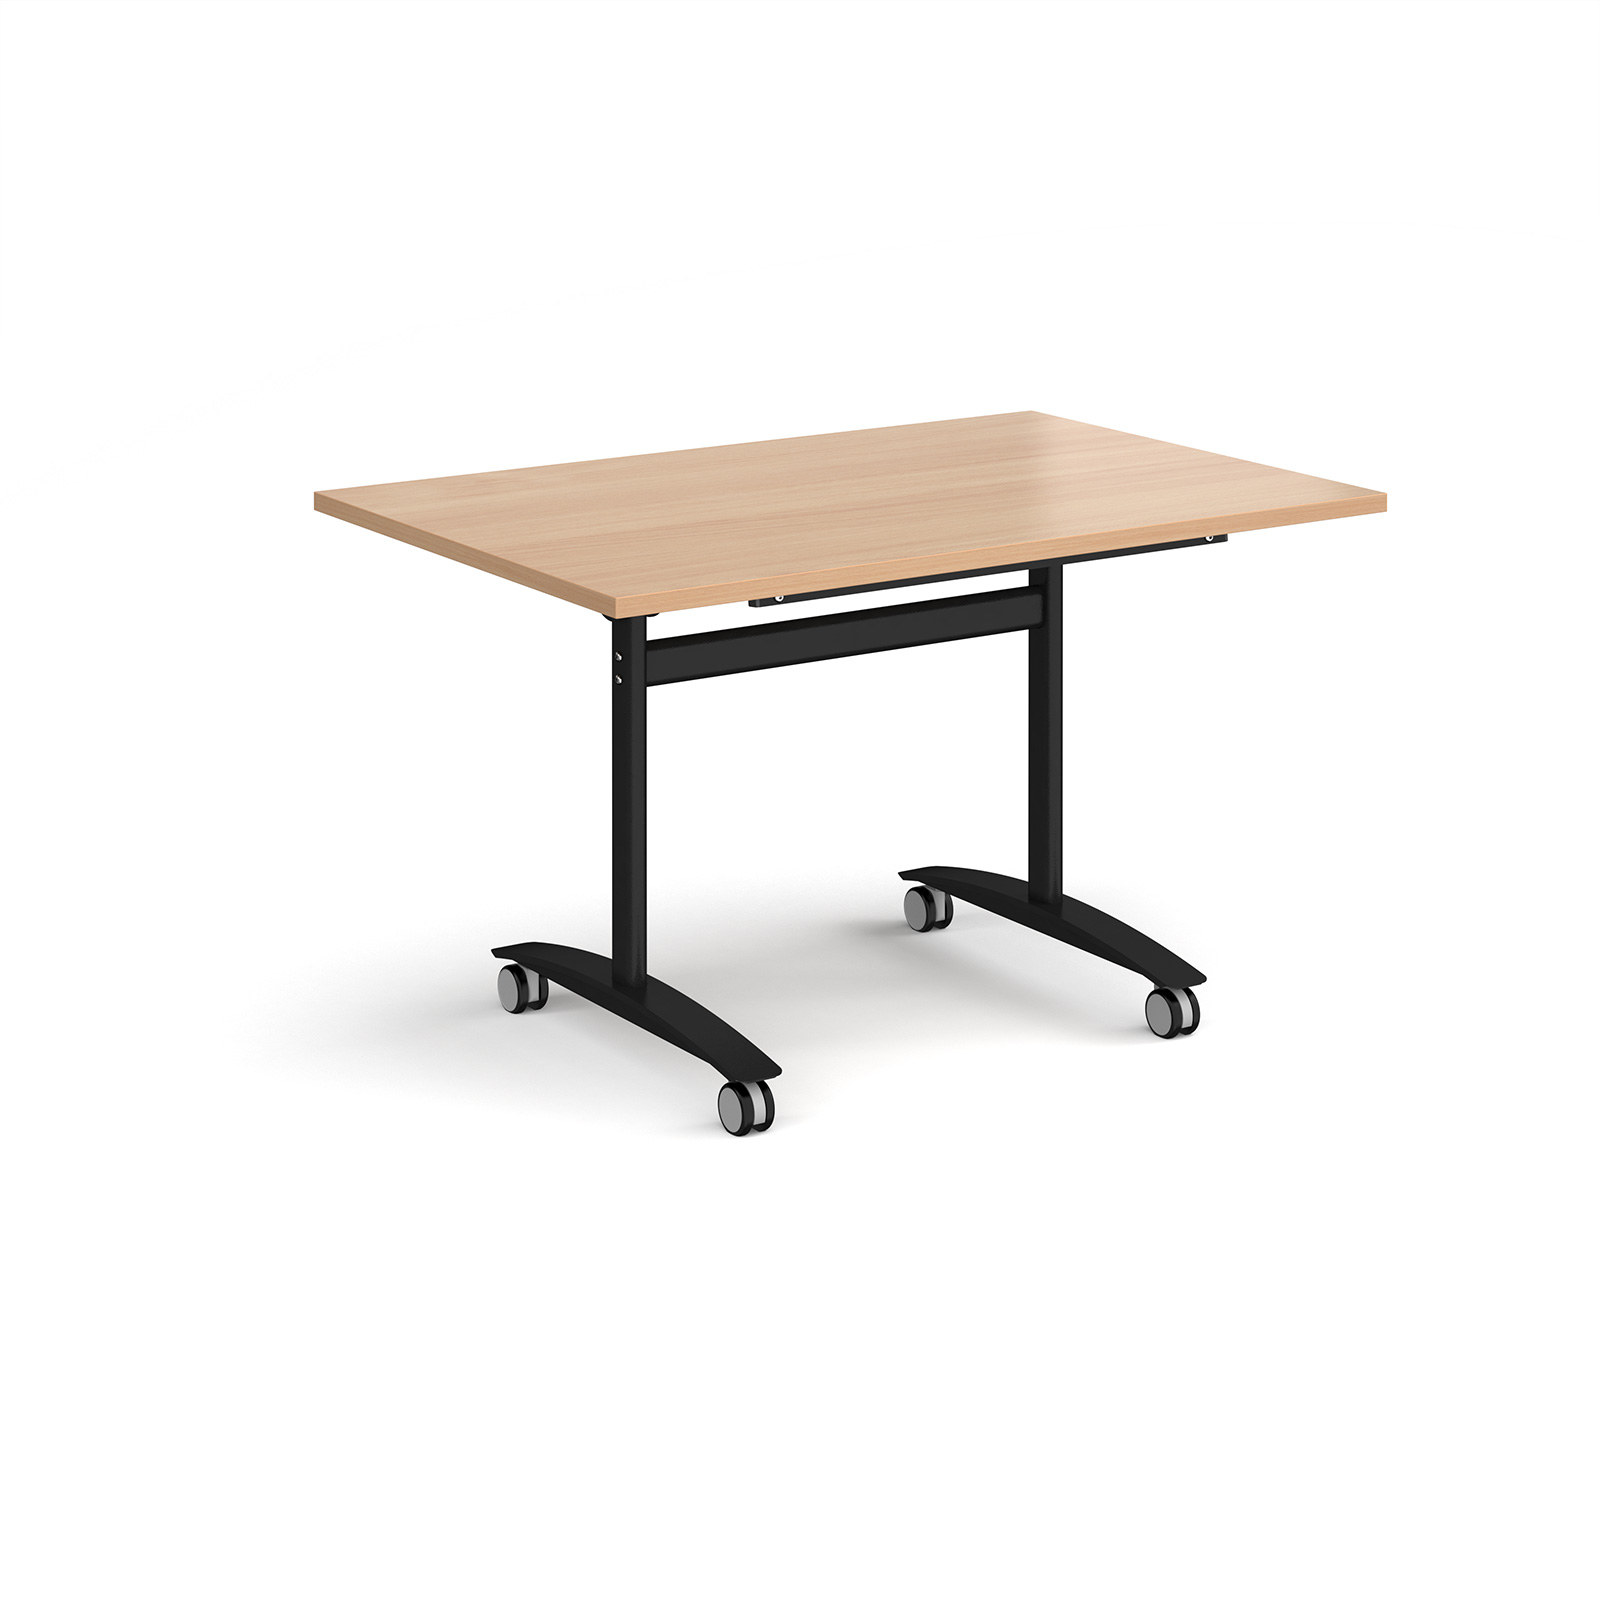 Boardroom / Meeting Rectangular deluxe fliptop meeting table